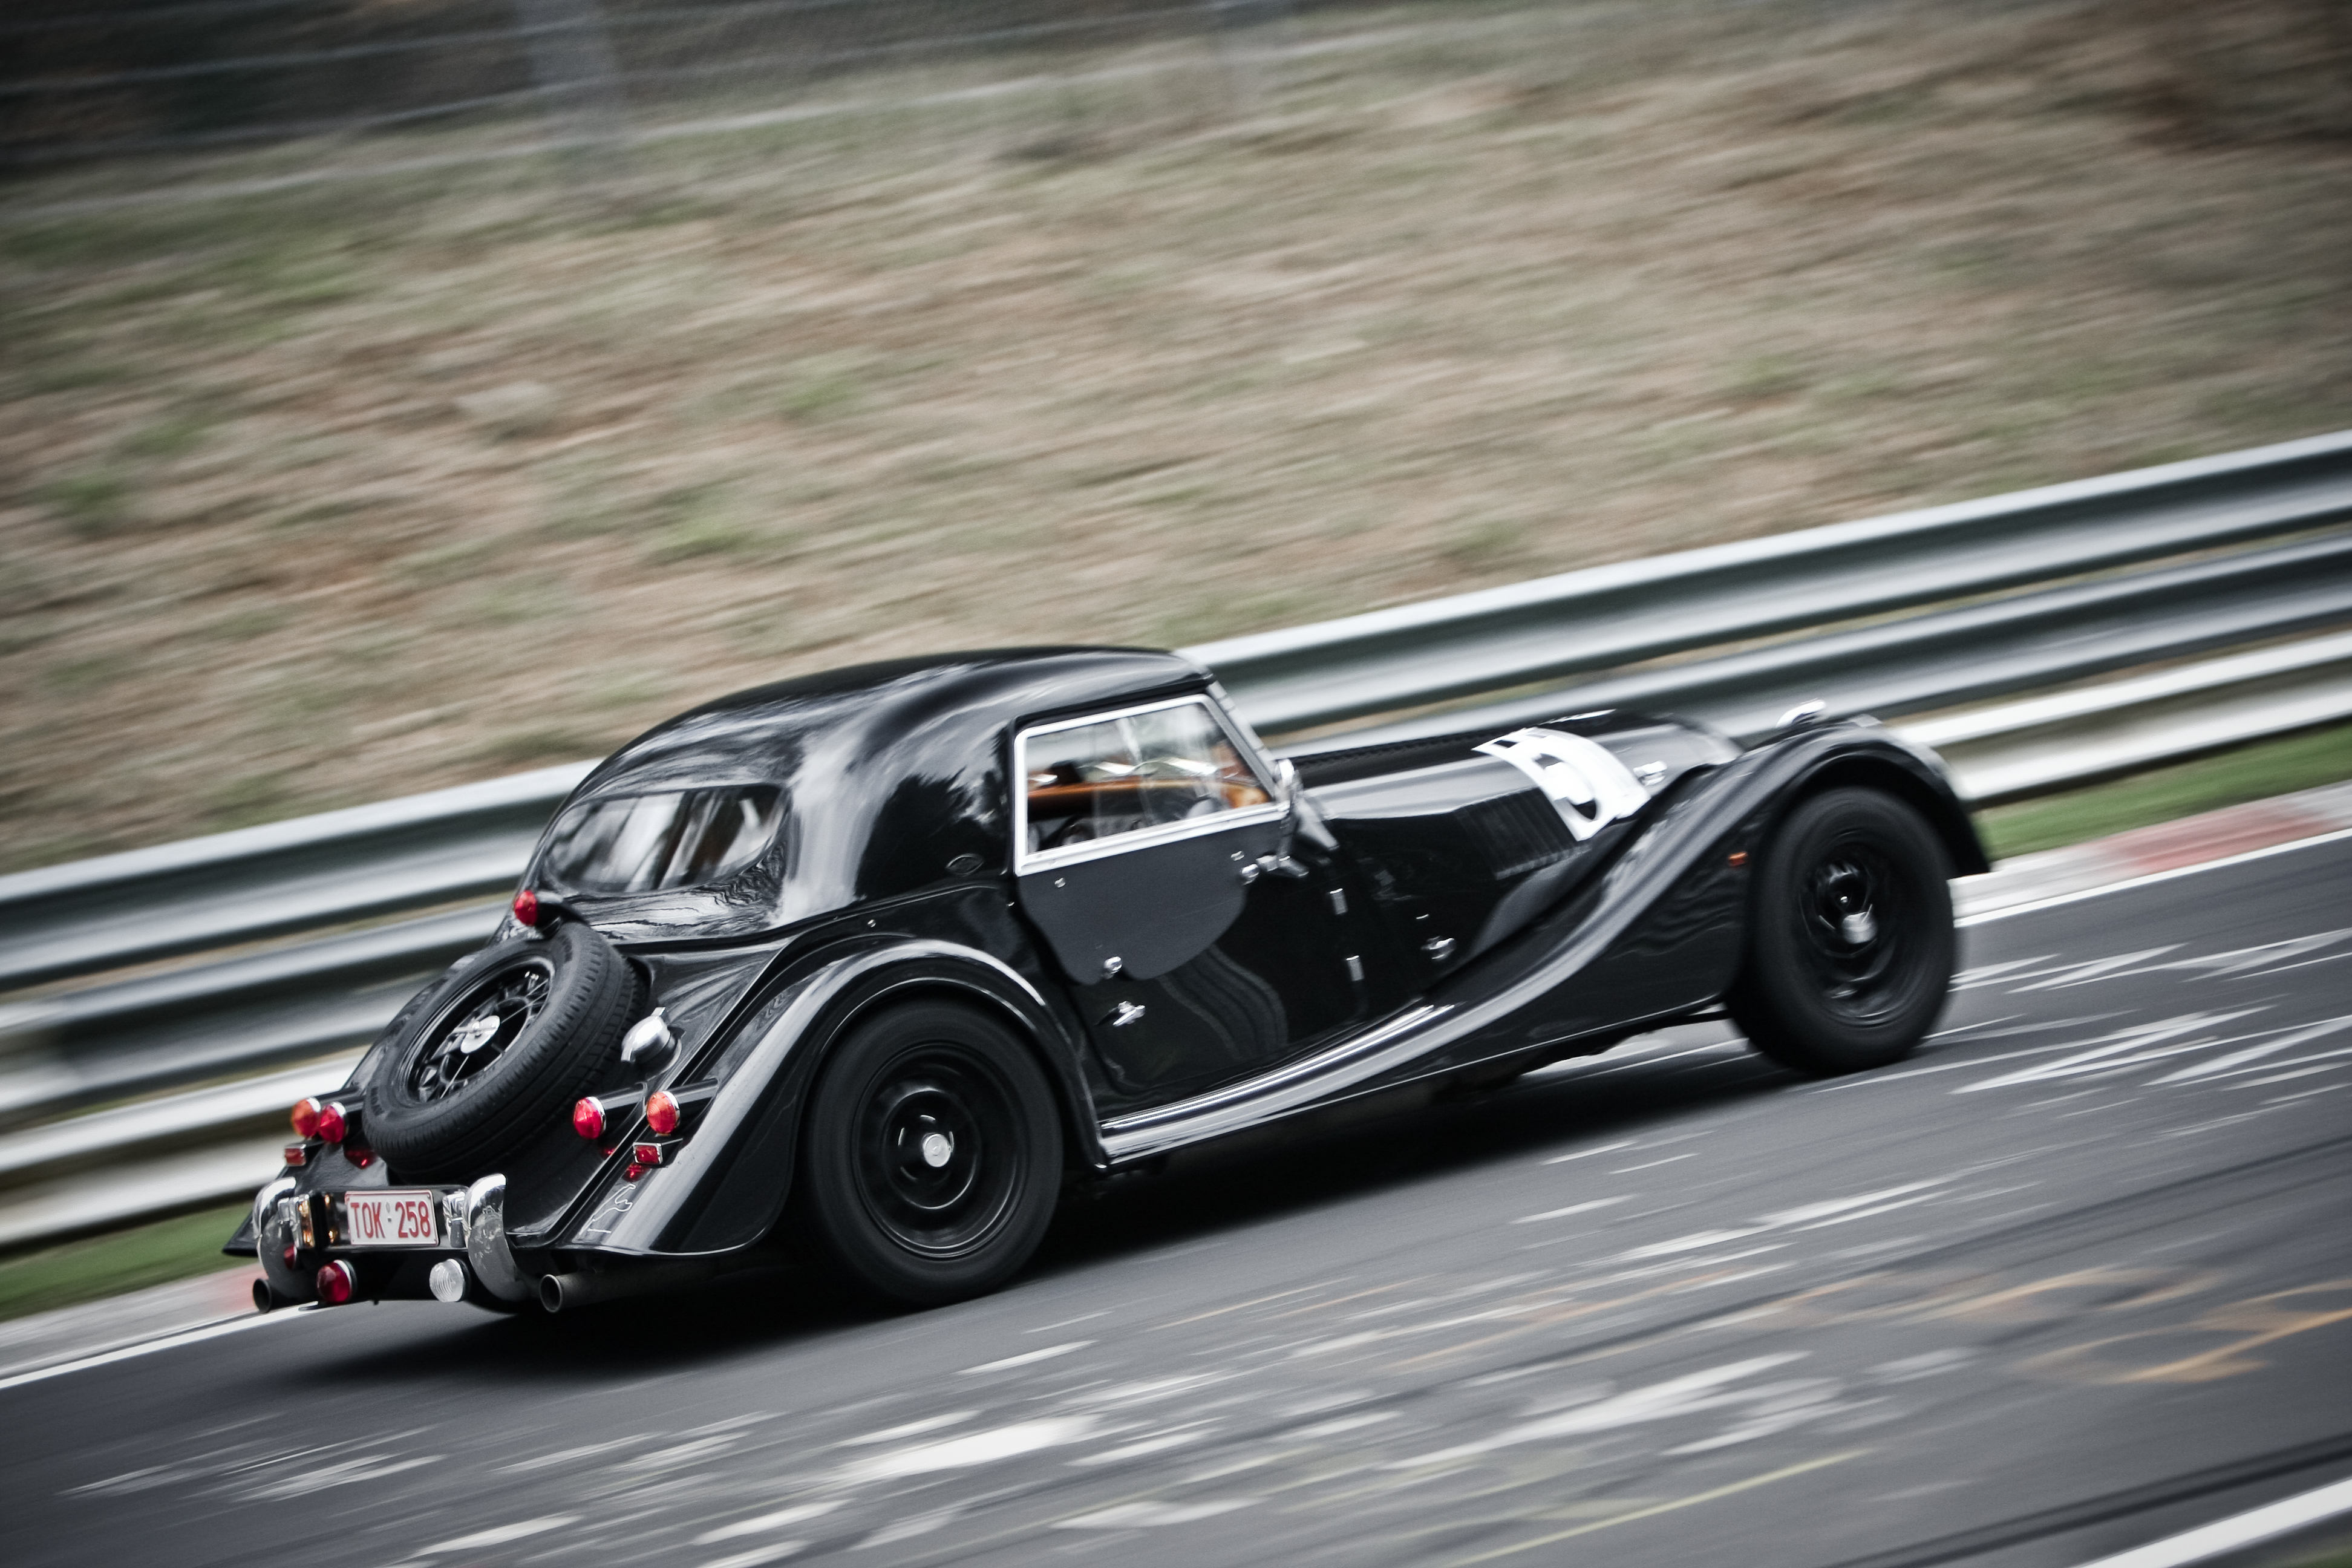 Morgan Roadster #22